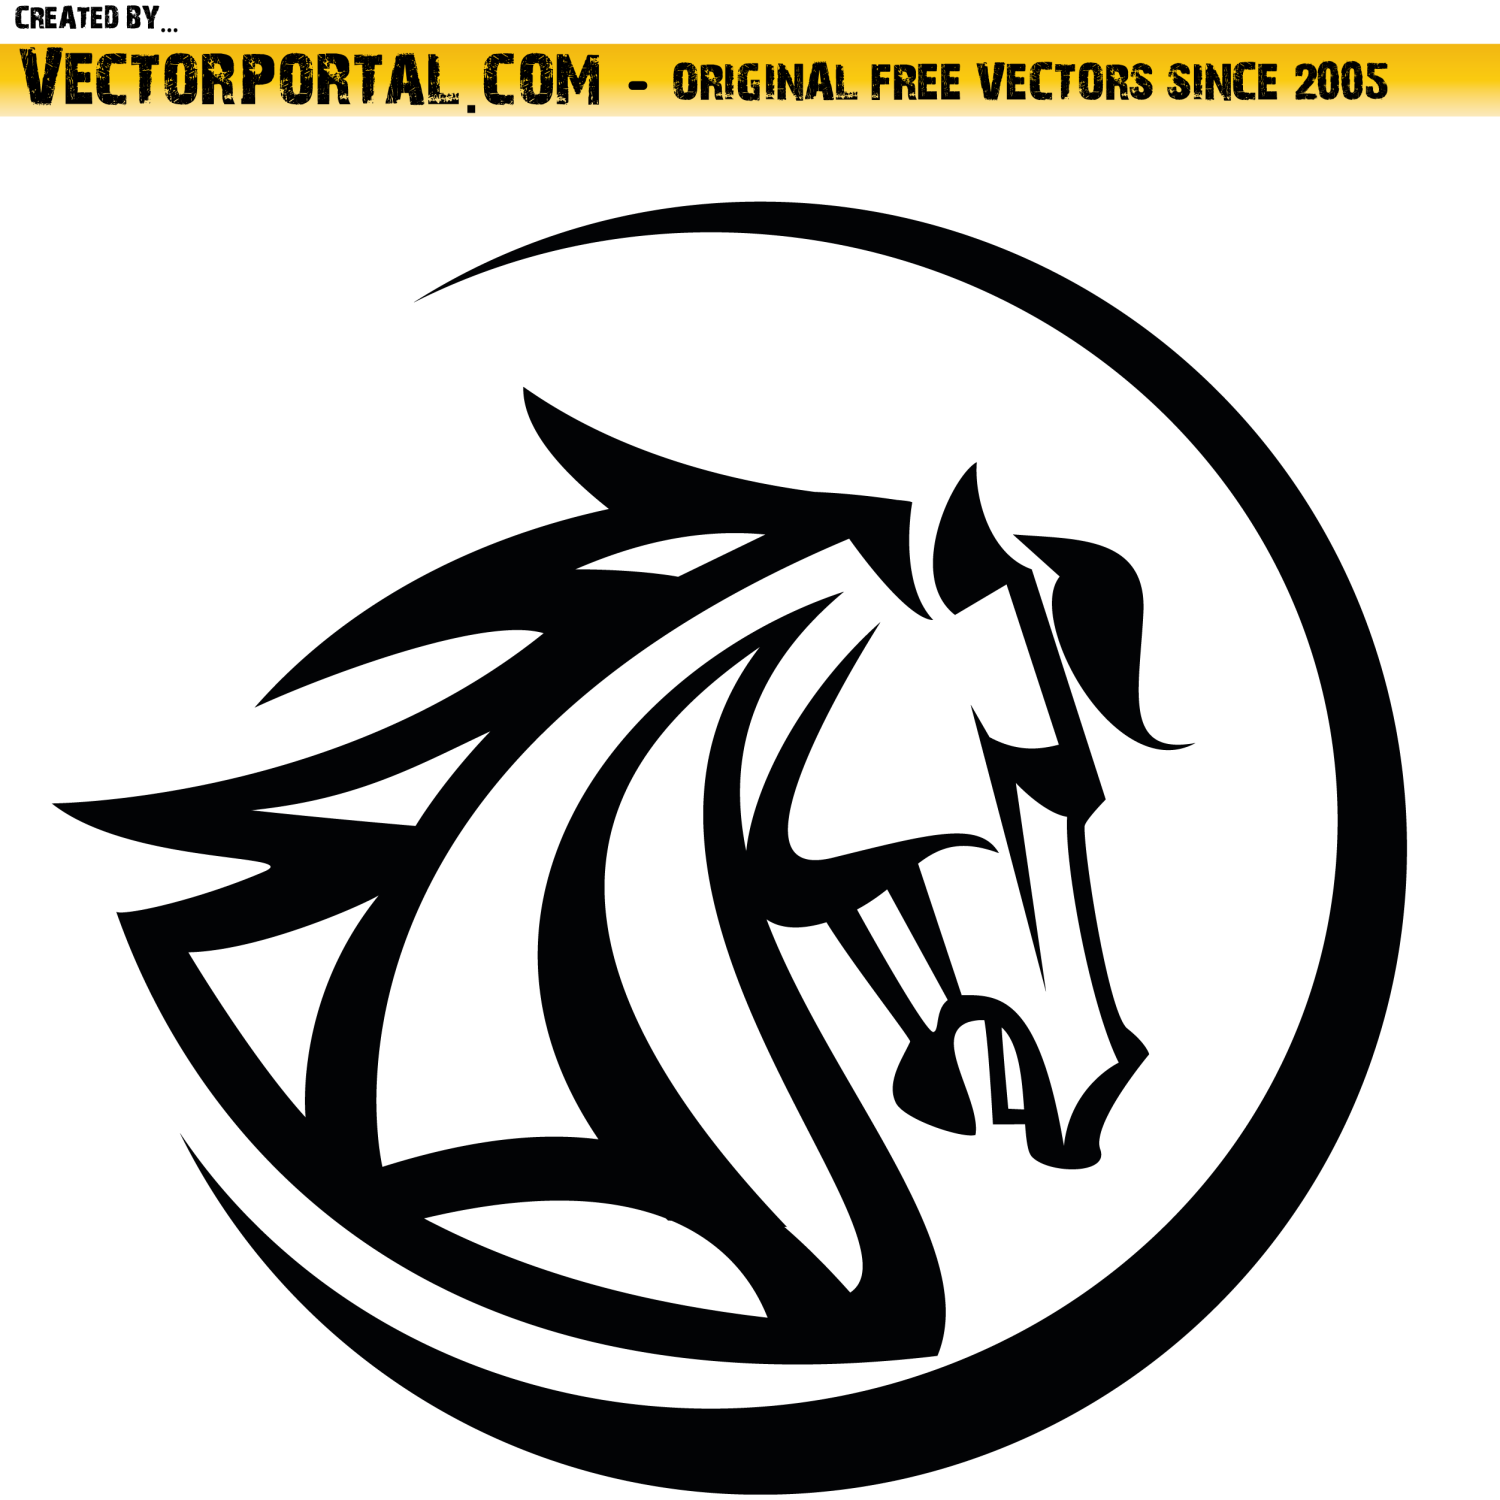 Horse head vector illustration.